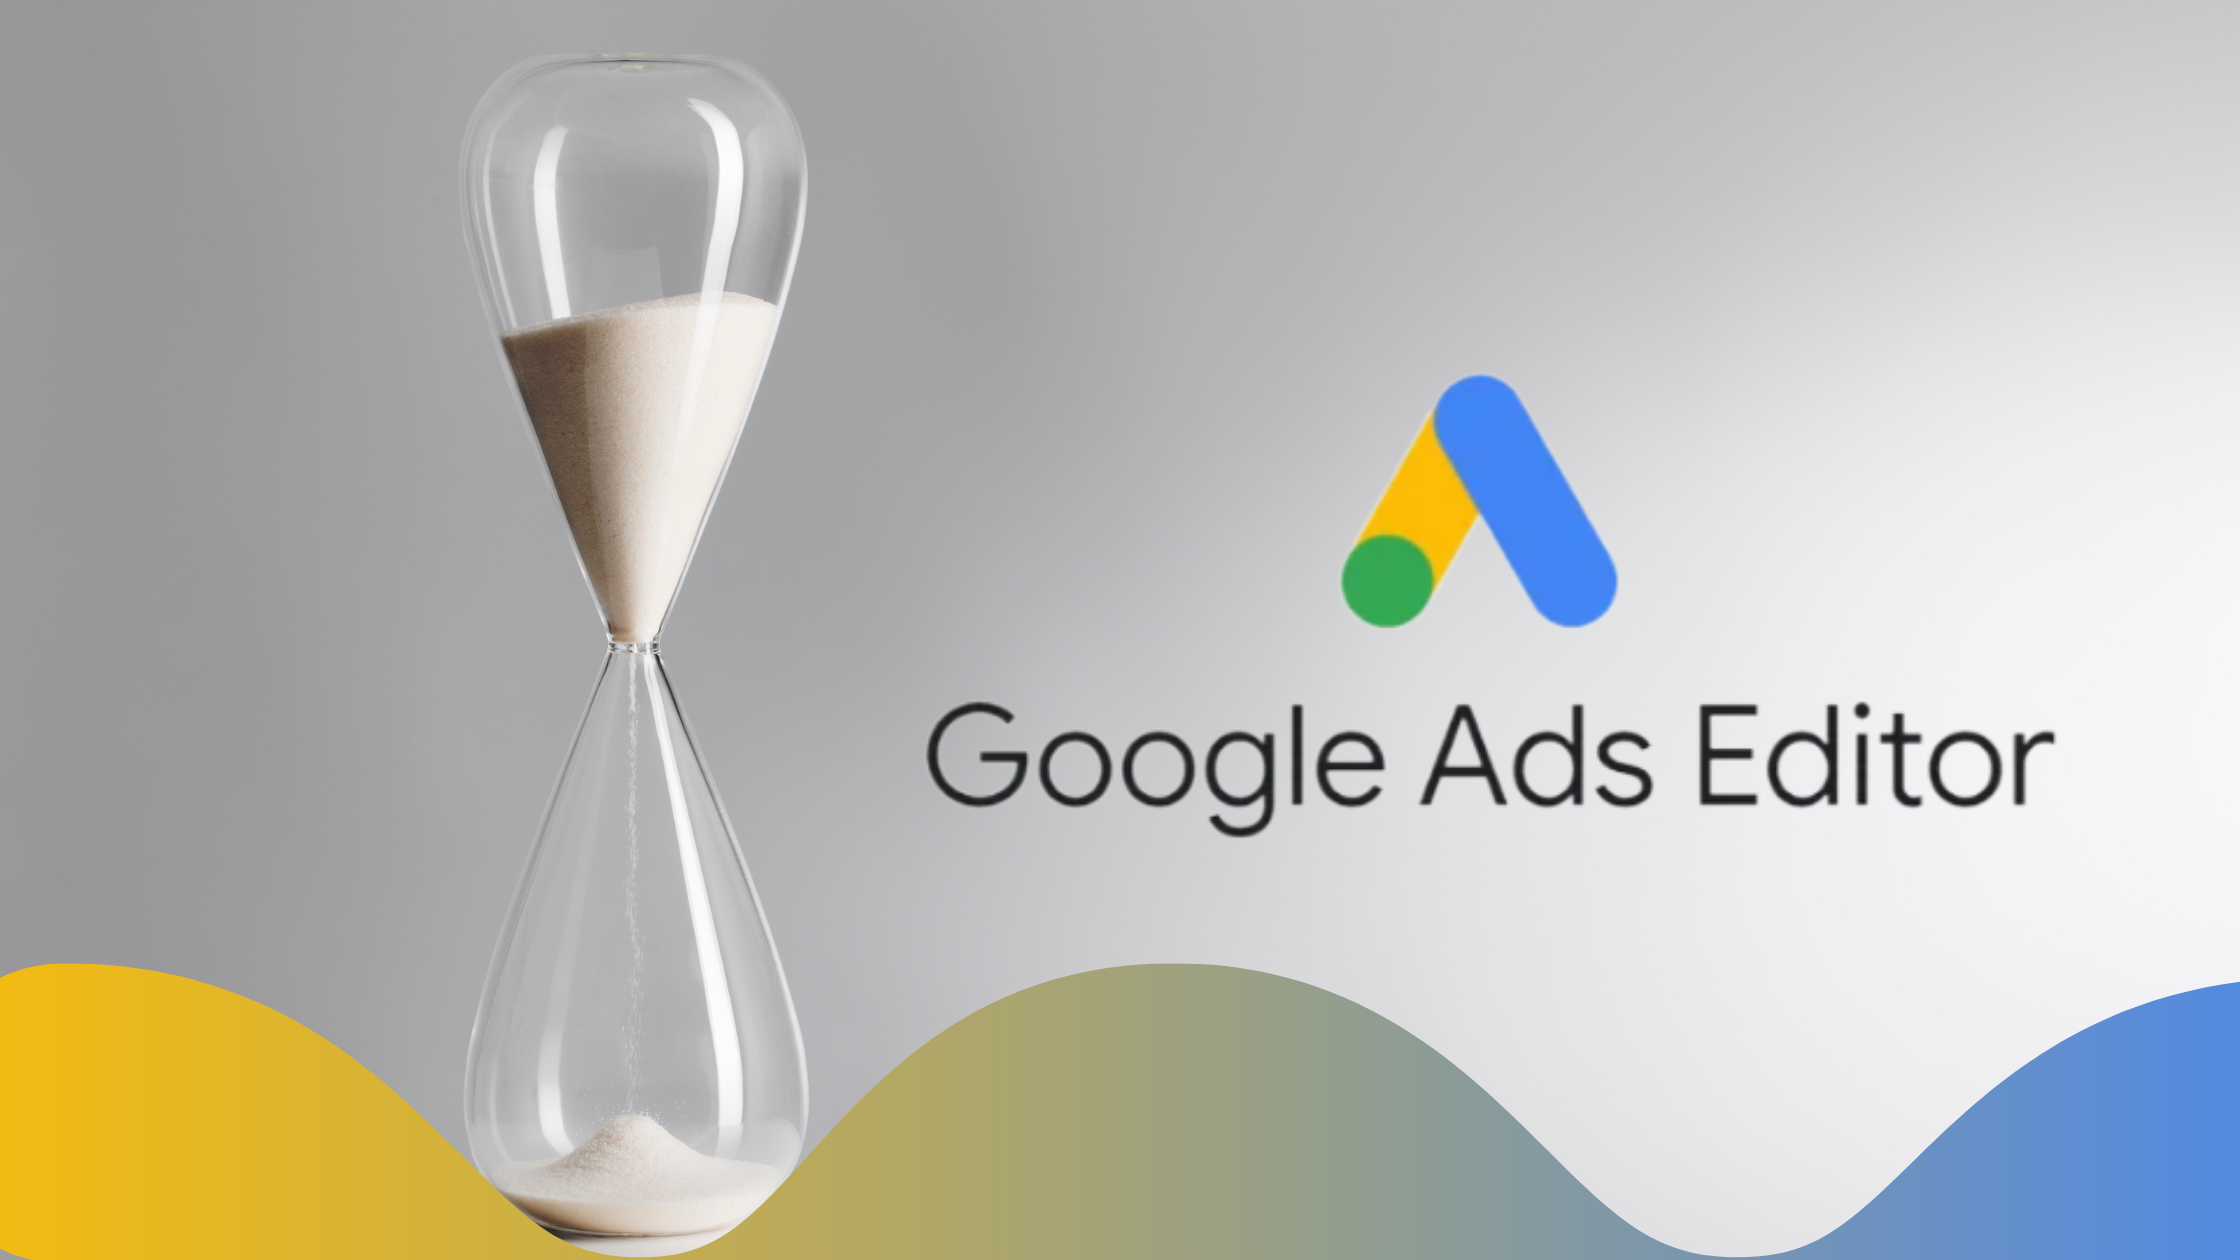 Come modificare campagne Google Ads con Google Ads Editor